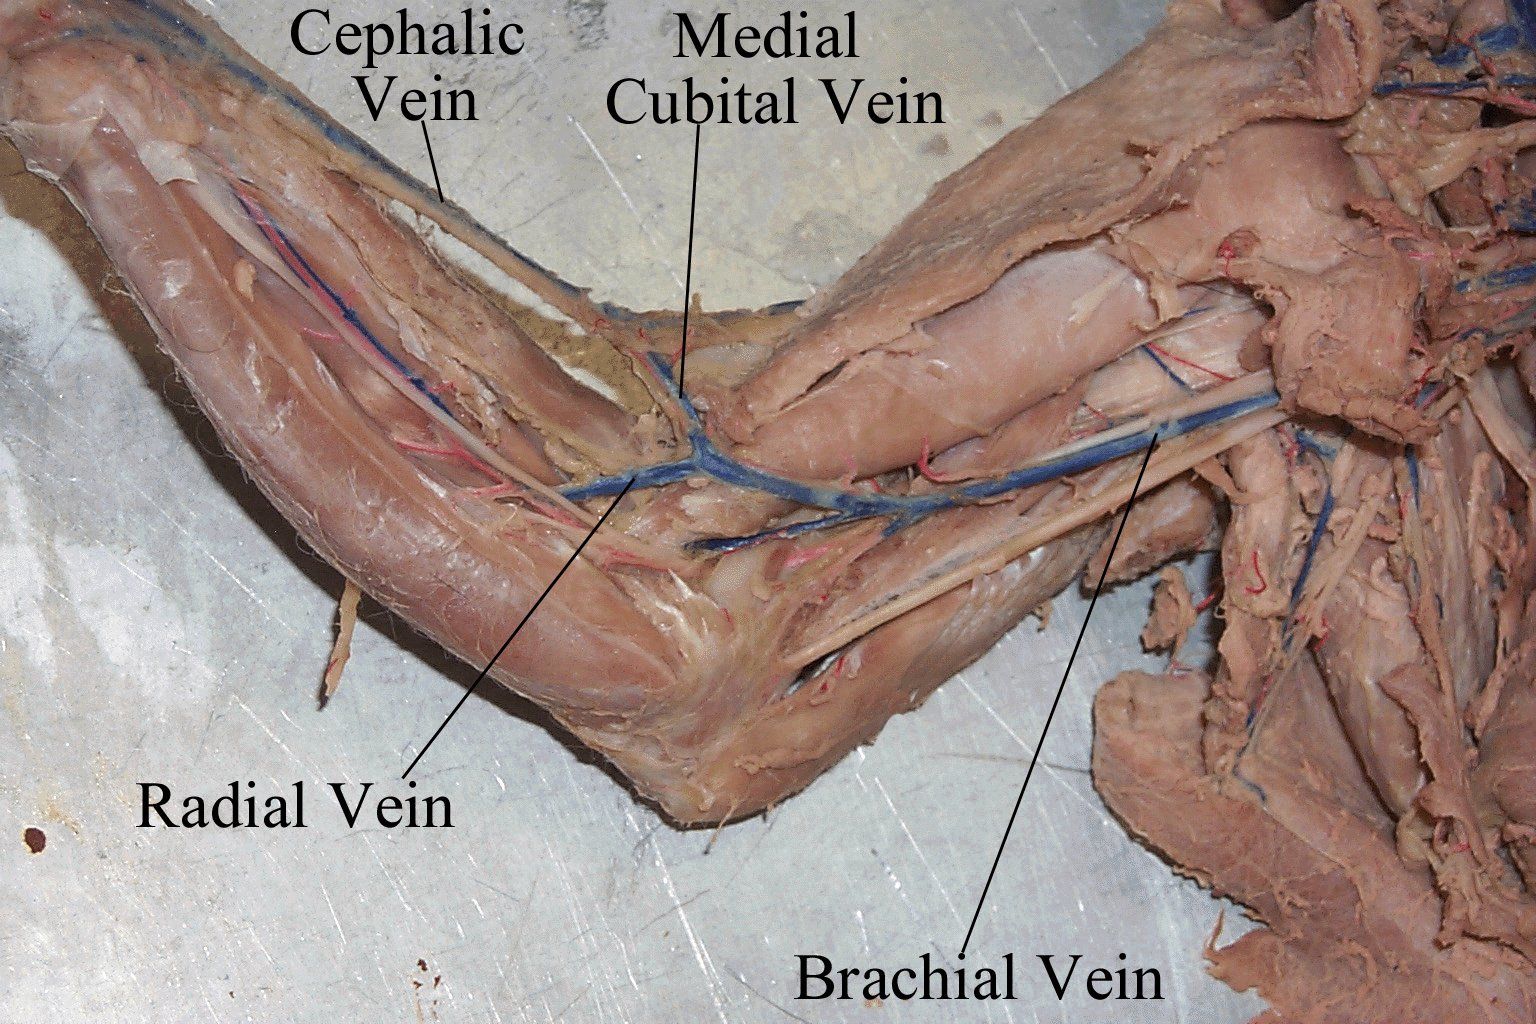 Cat dissection study tools circulatory system